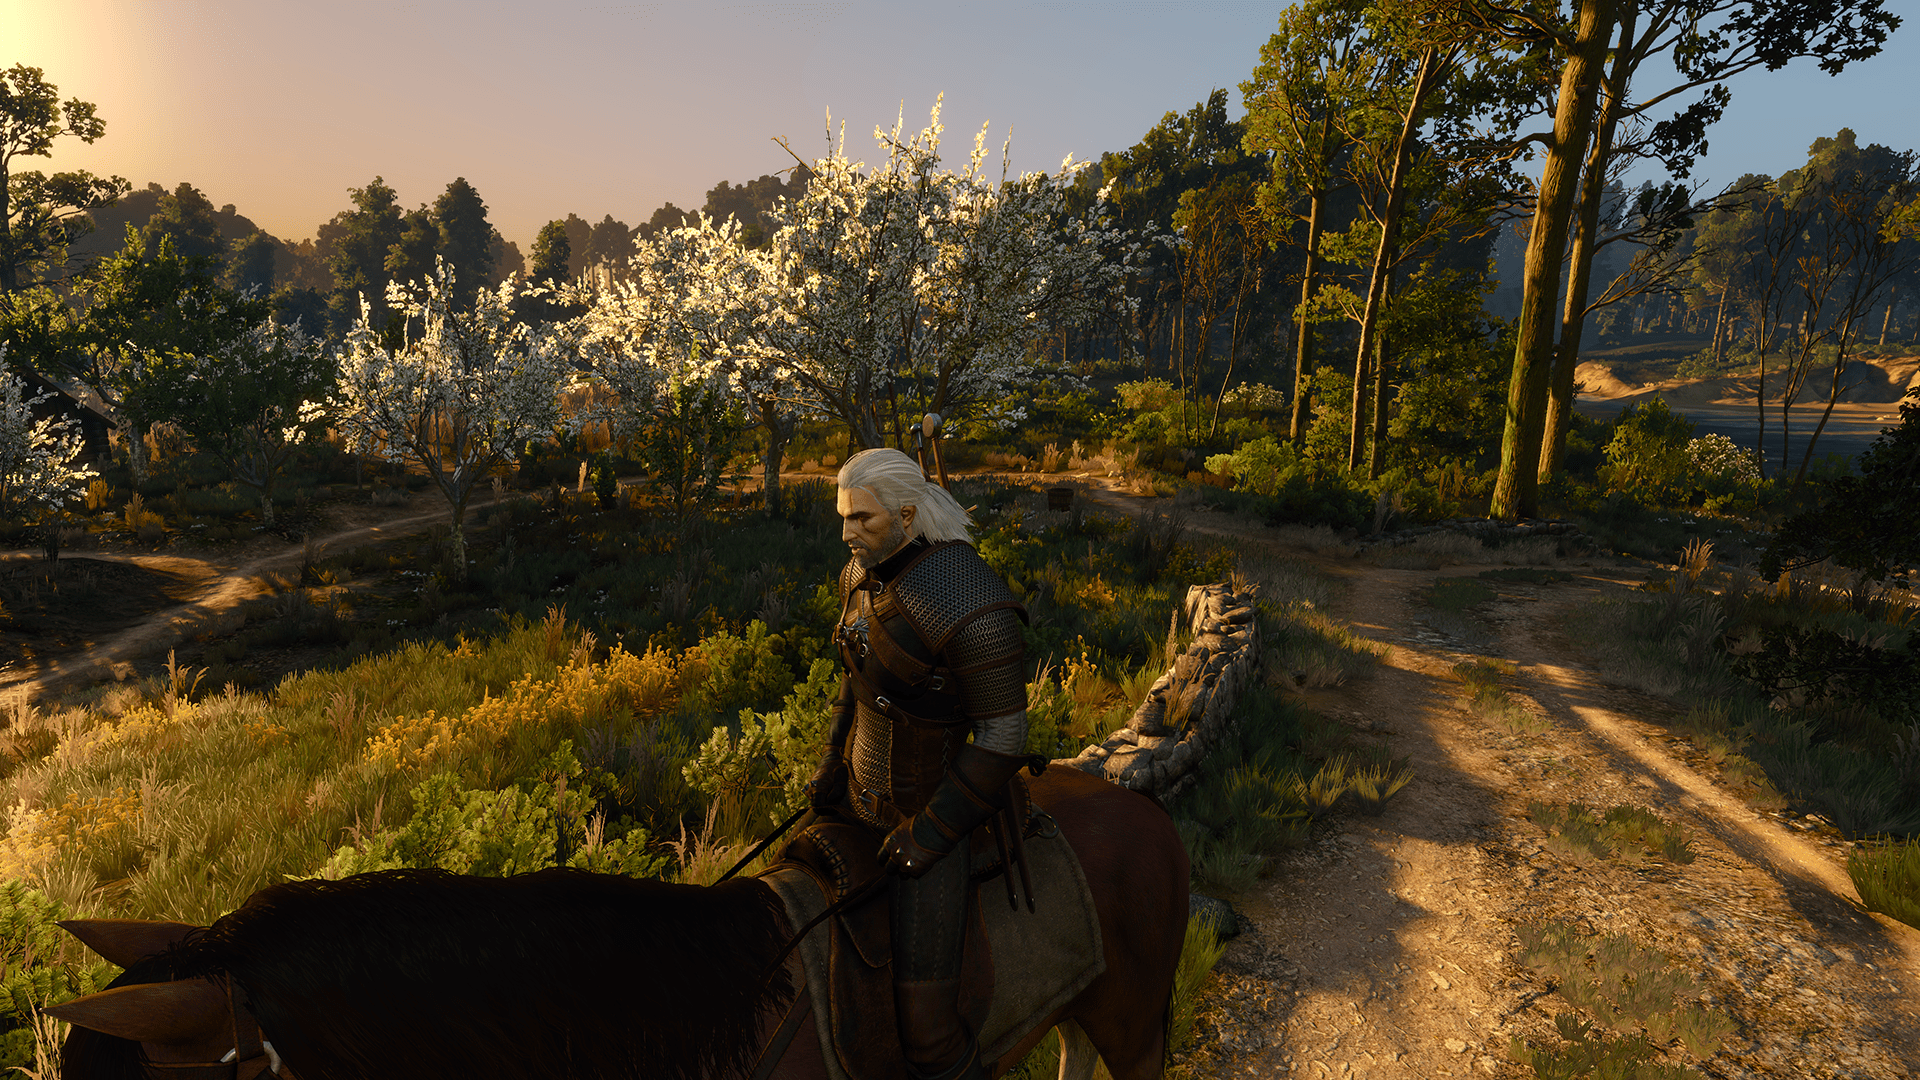 Www Hd Wallpaper Com Nature Geforce Com The Witcher 3 Wild Hunt Texture Quality